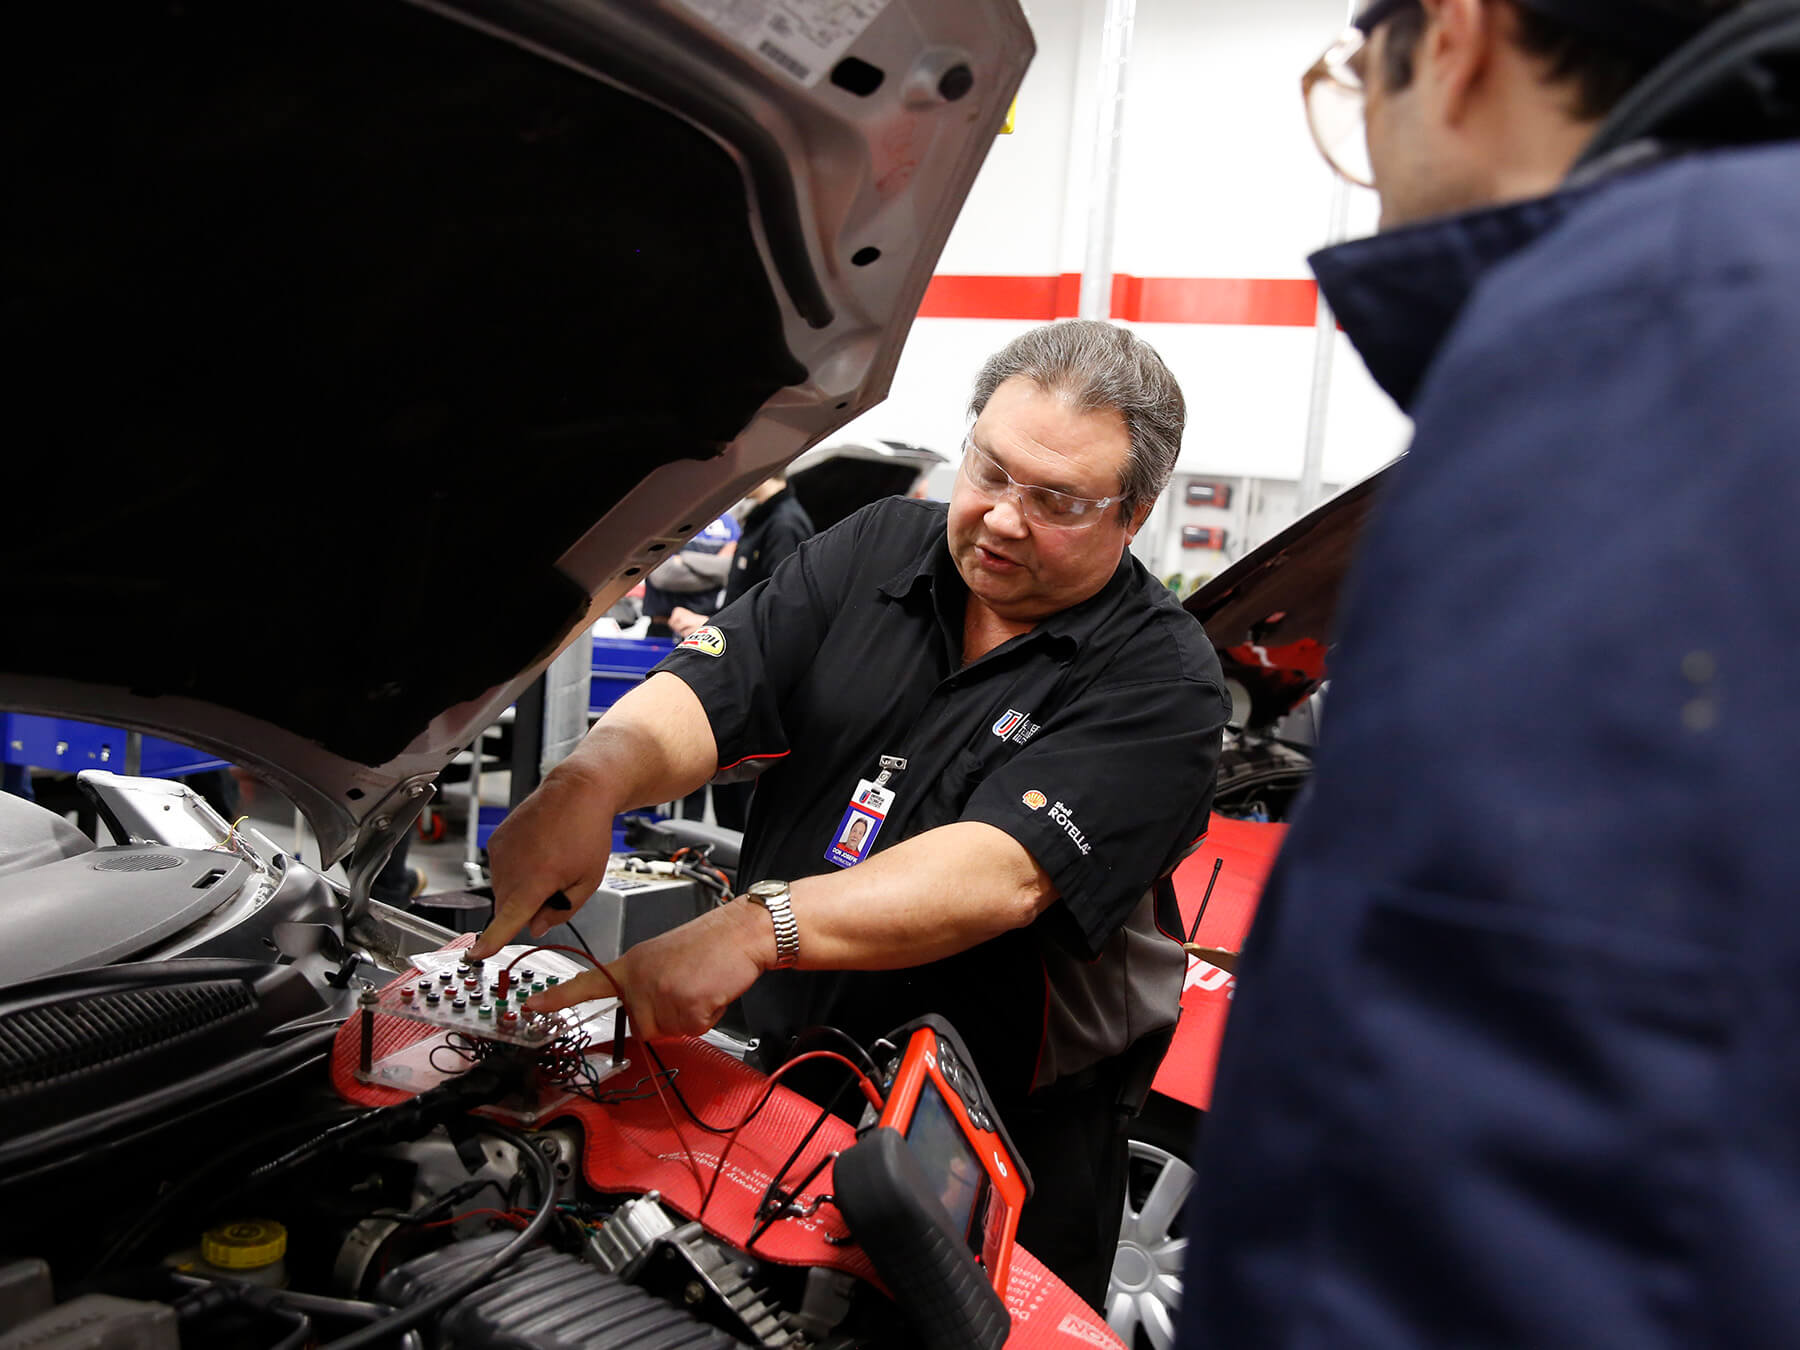 UTI students and instructor working under the hood in the auto lab